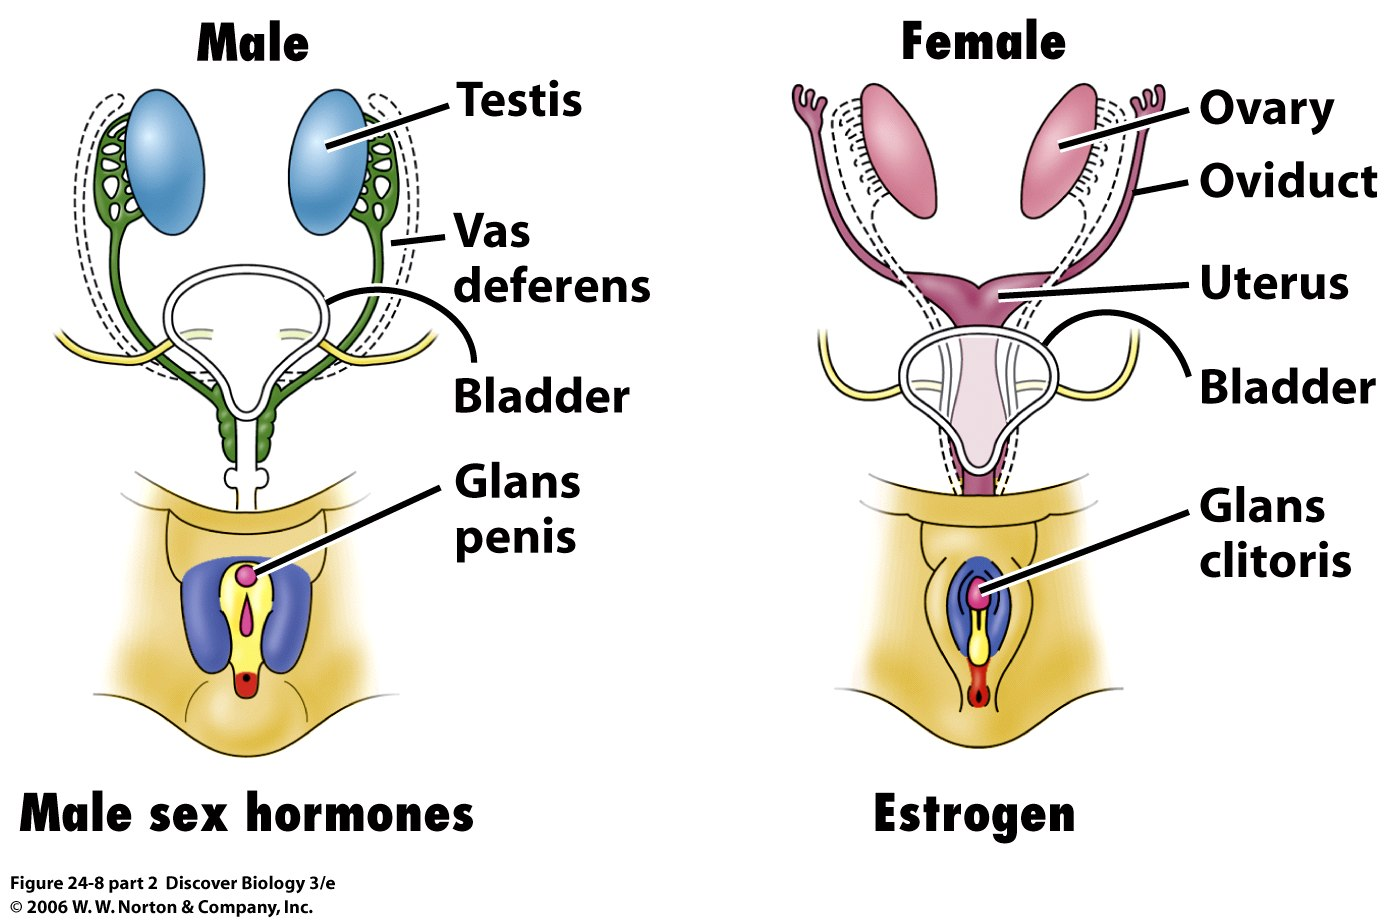 male sex hormones are produced by what cells in Winnipeg